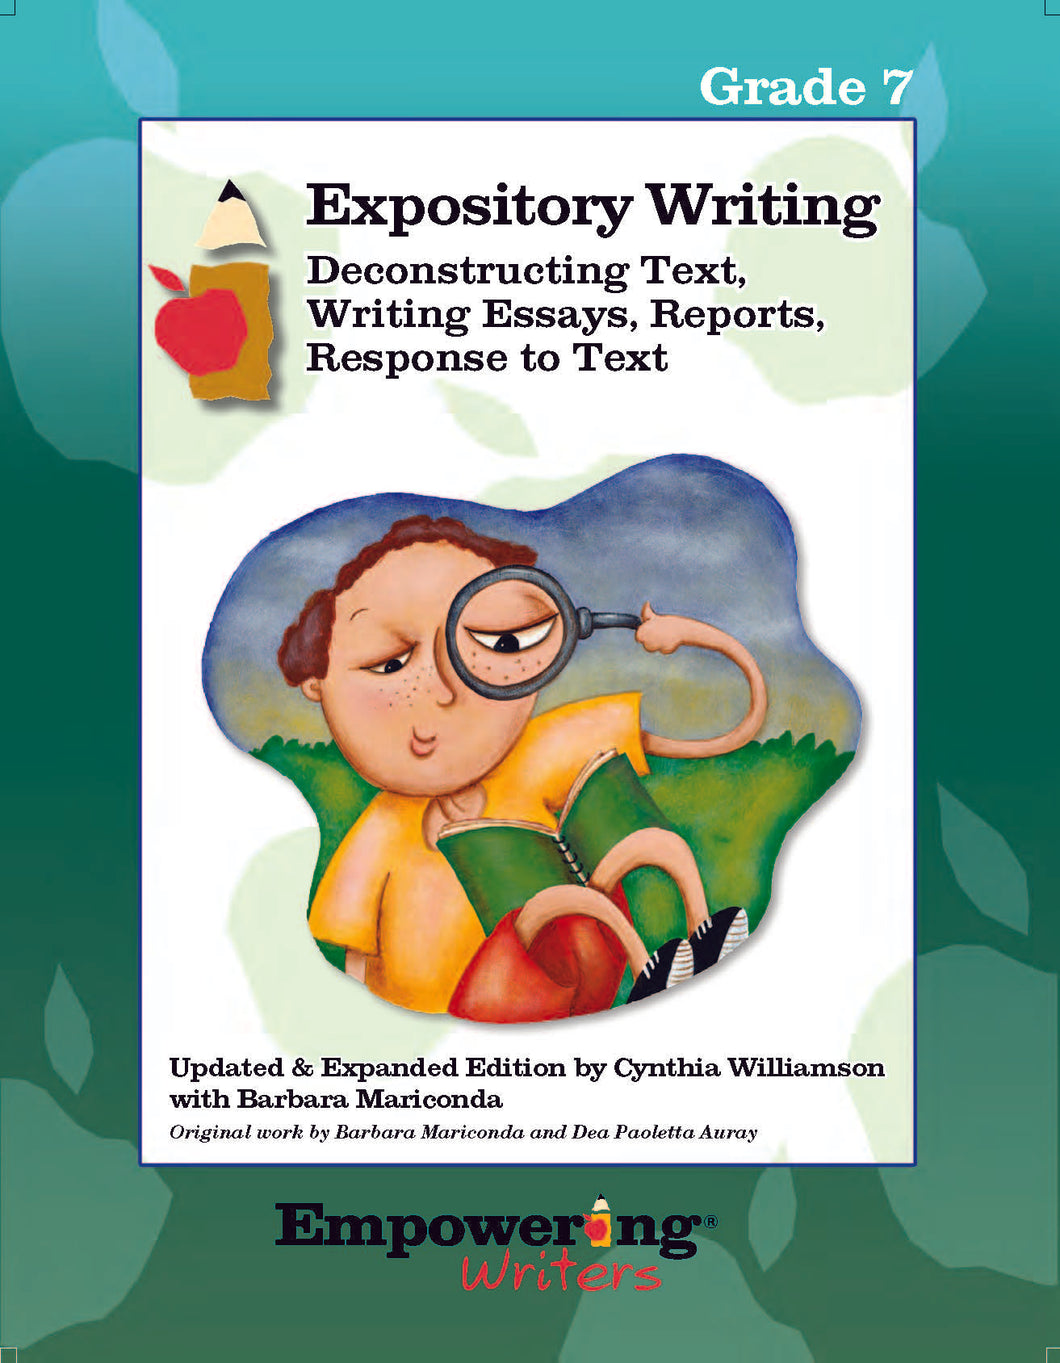 Grade 7 Informational/Expository Writing Guide (printed)